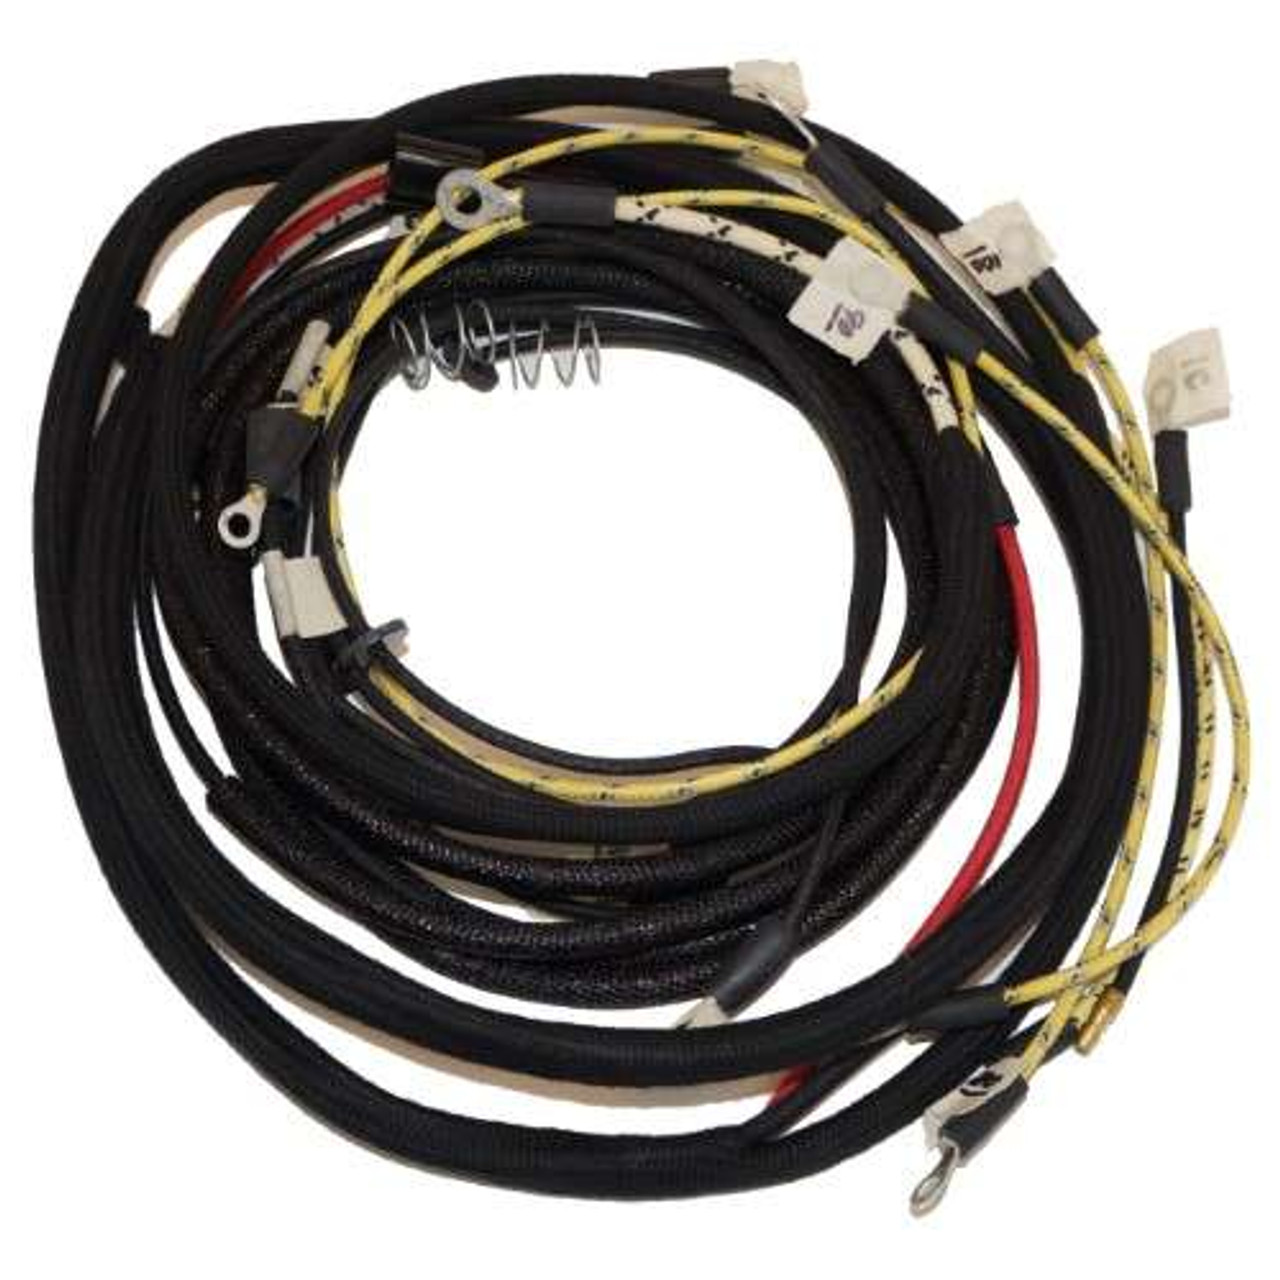 medium resolution of wiring harness kit tractors with 1 wire alternator allis chalmers wd wd45 djs tractor parts llc